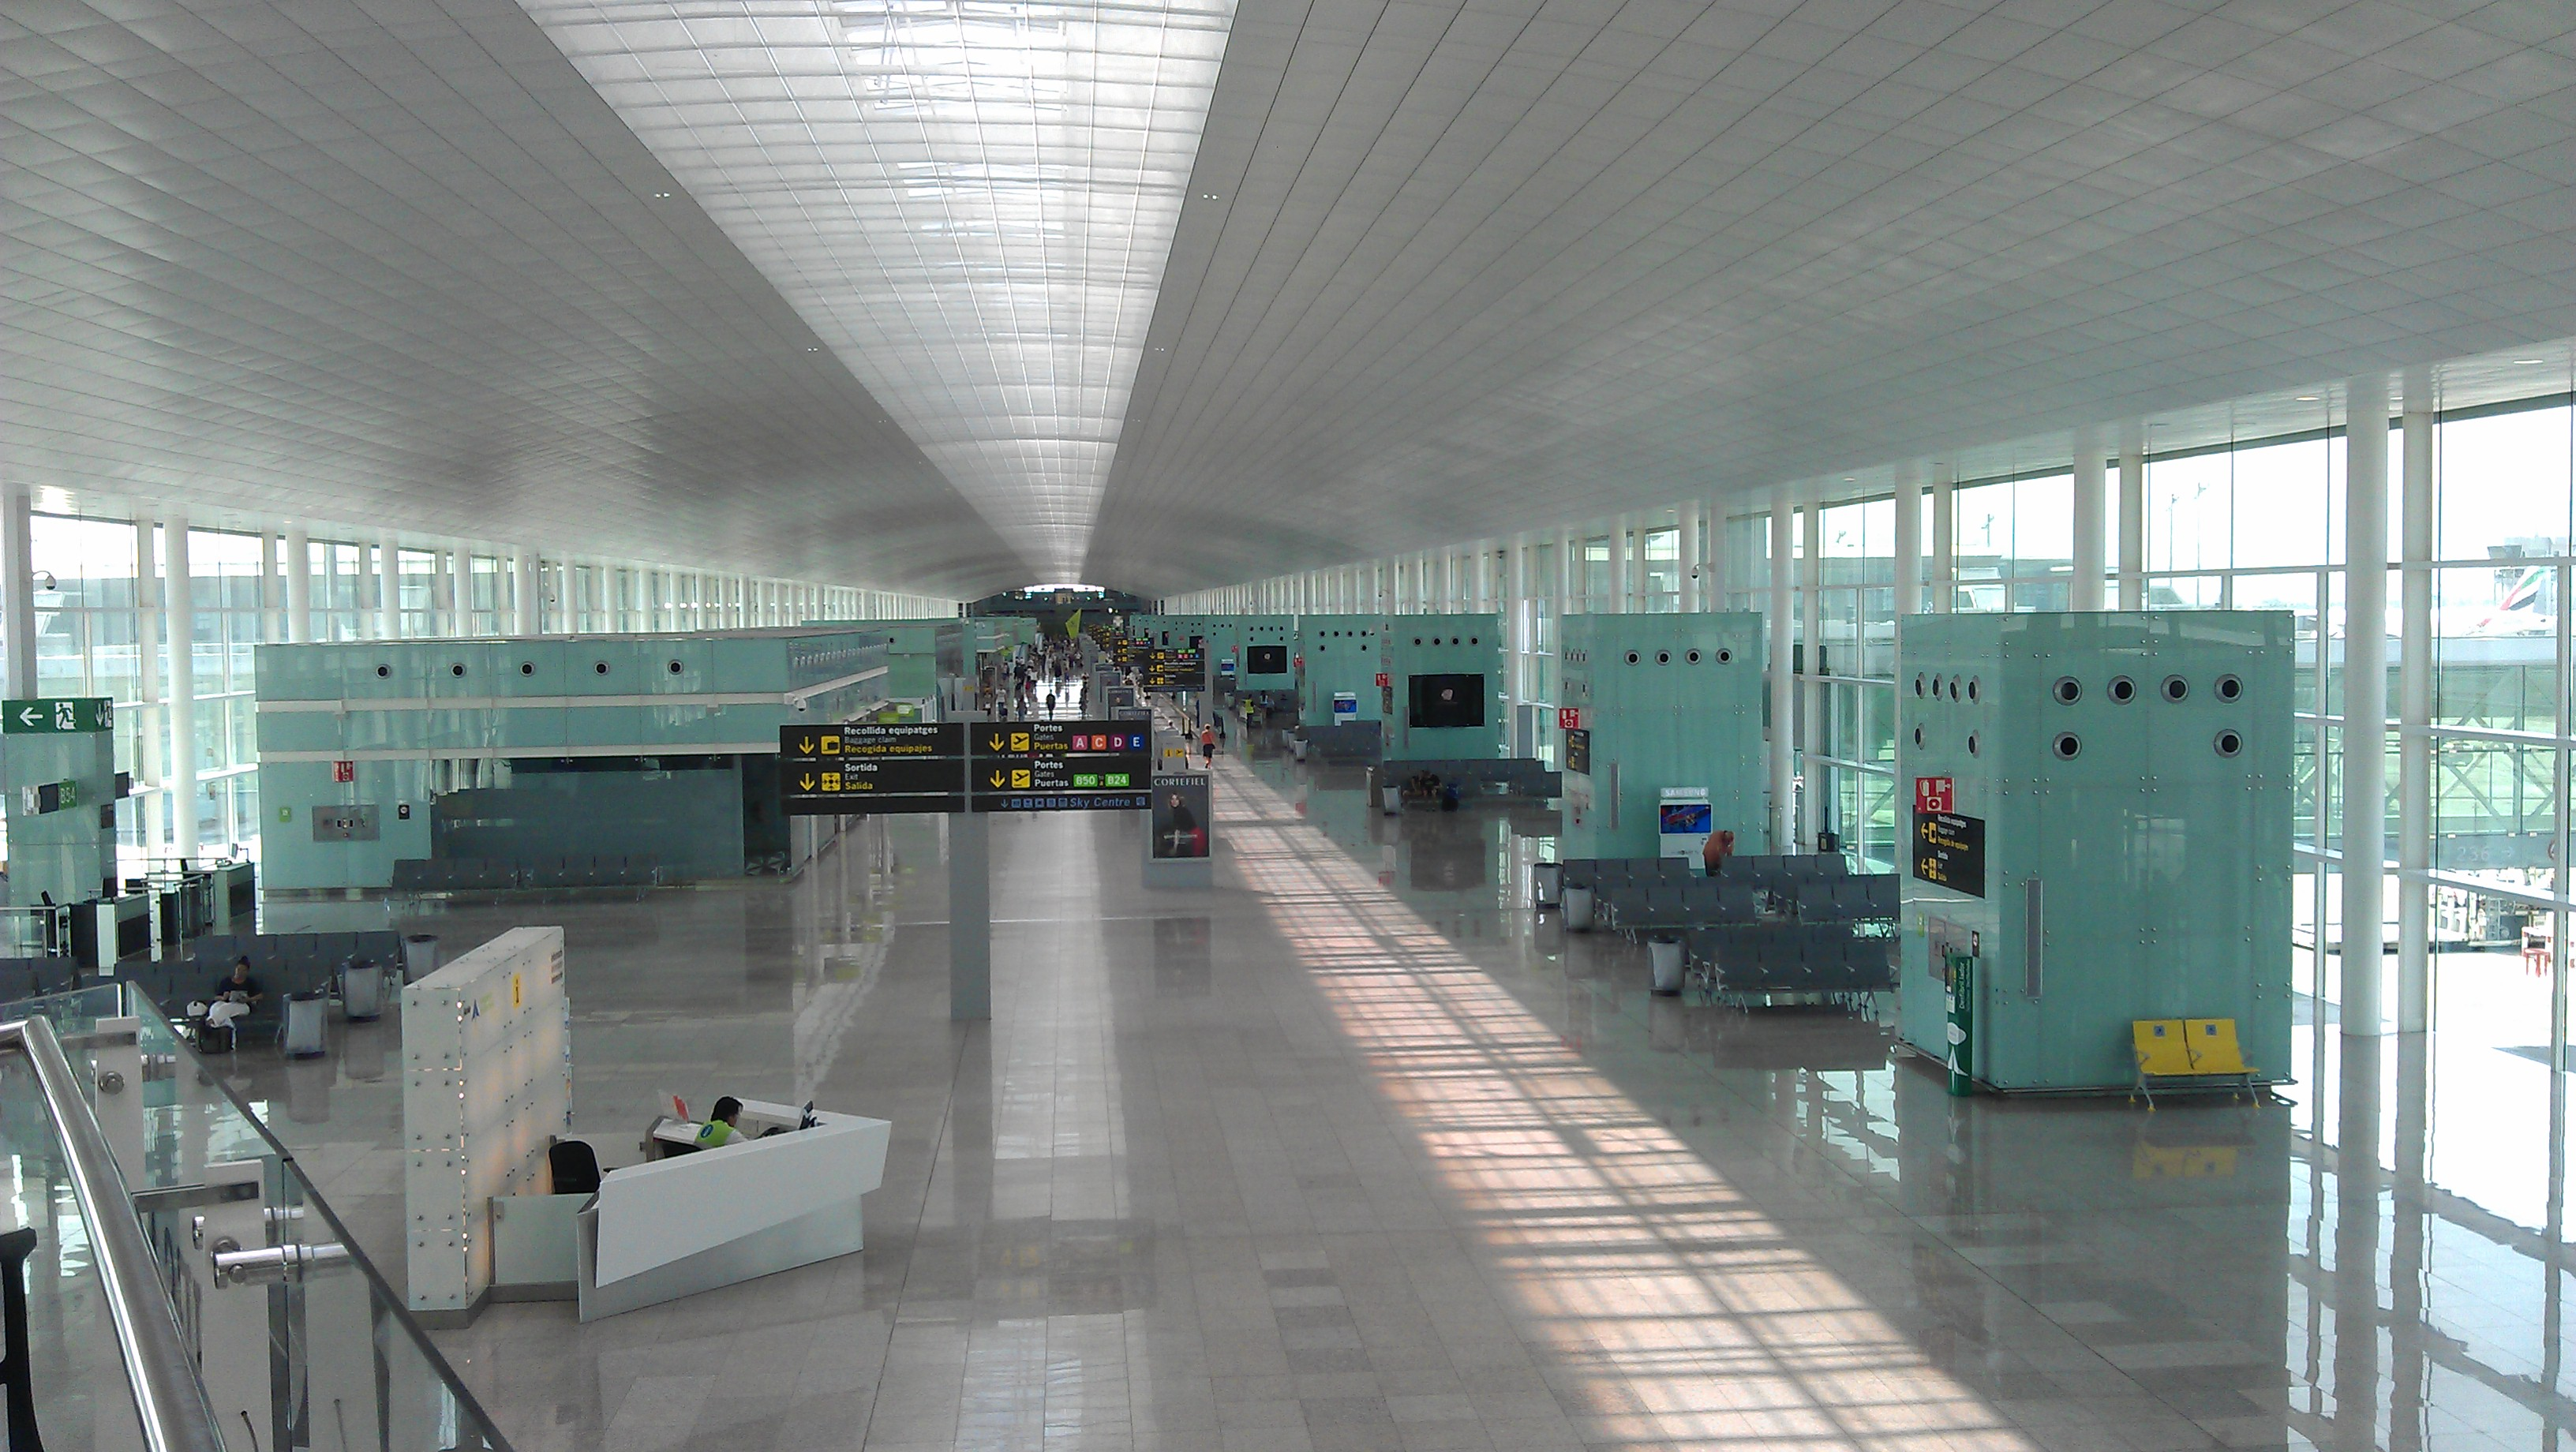 Barcelona Airport To Avenida Palace Hotel